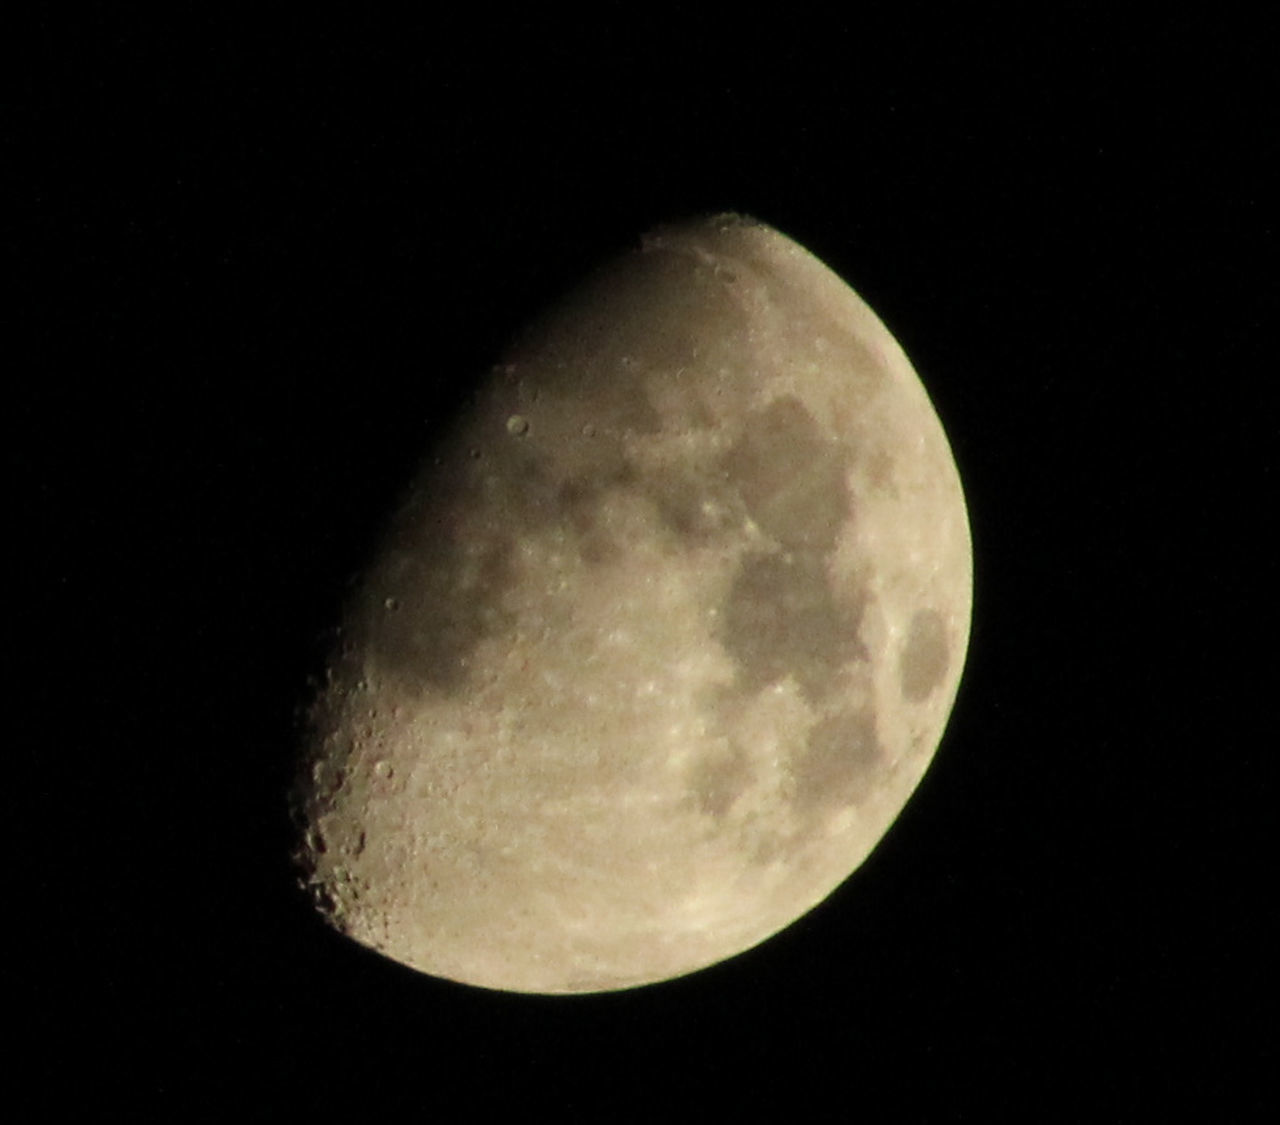 moon, night, moon surface, astronomy, planetary moon, beauty in nature, nature, full moon, majestic, half moon, tranquility, scenics, space exploration, tranquil scene, clear sky, outdoors, no people, low angle view, close-up, space, sky